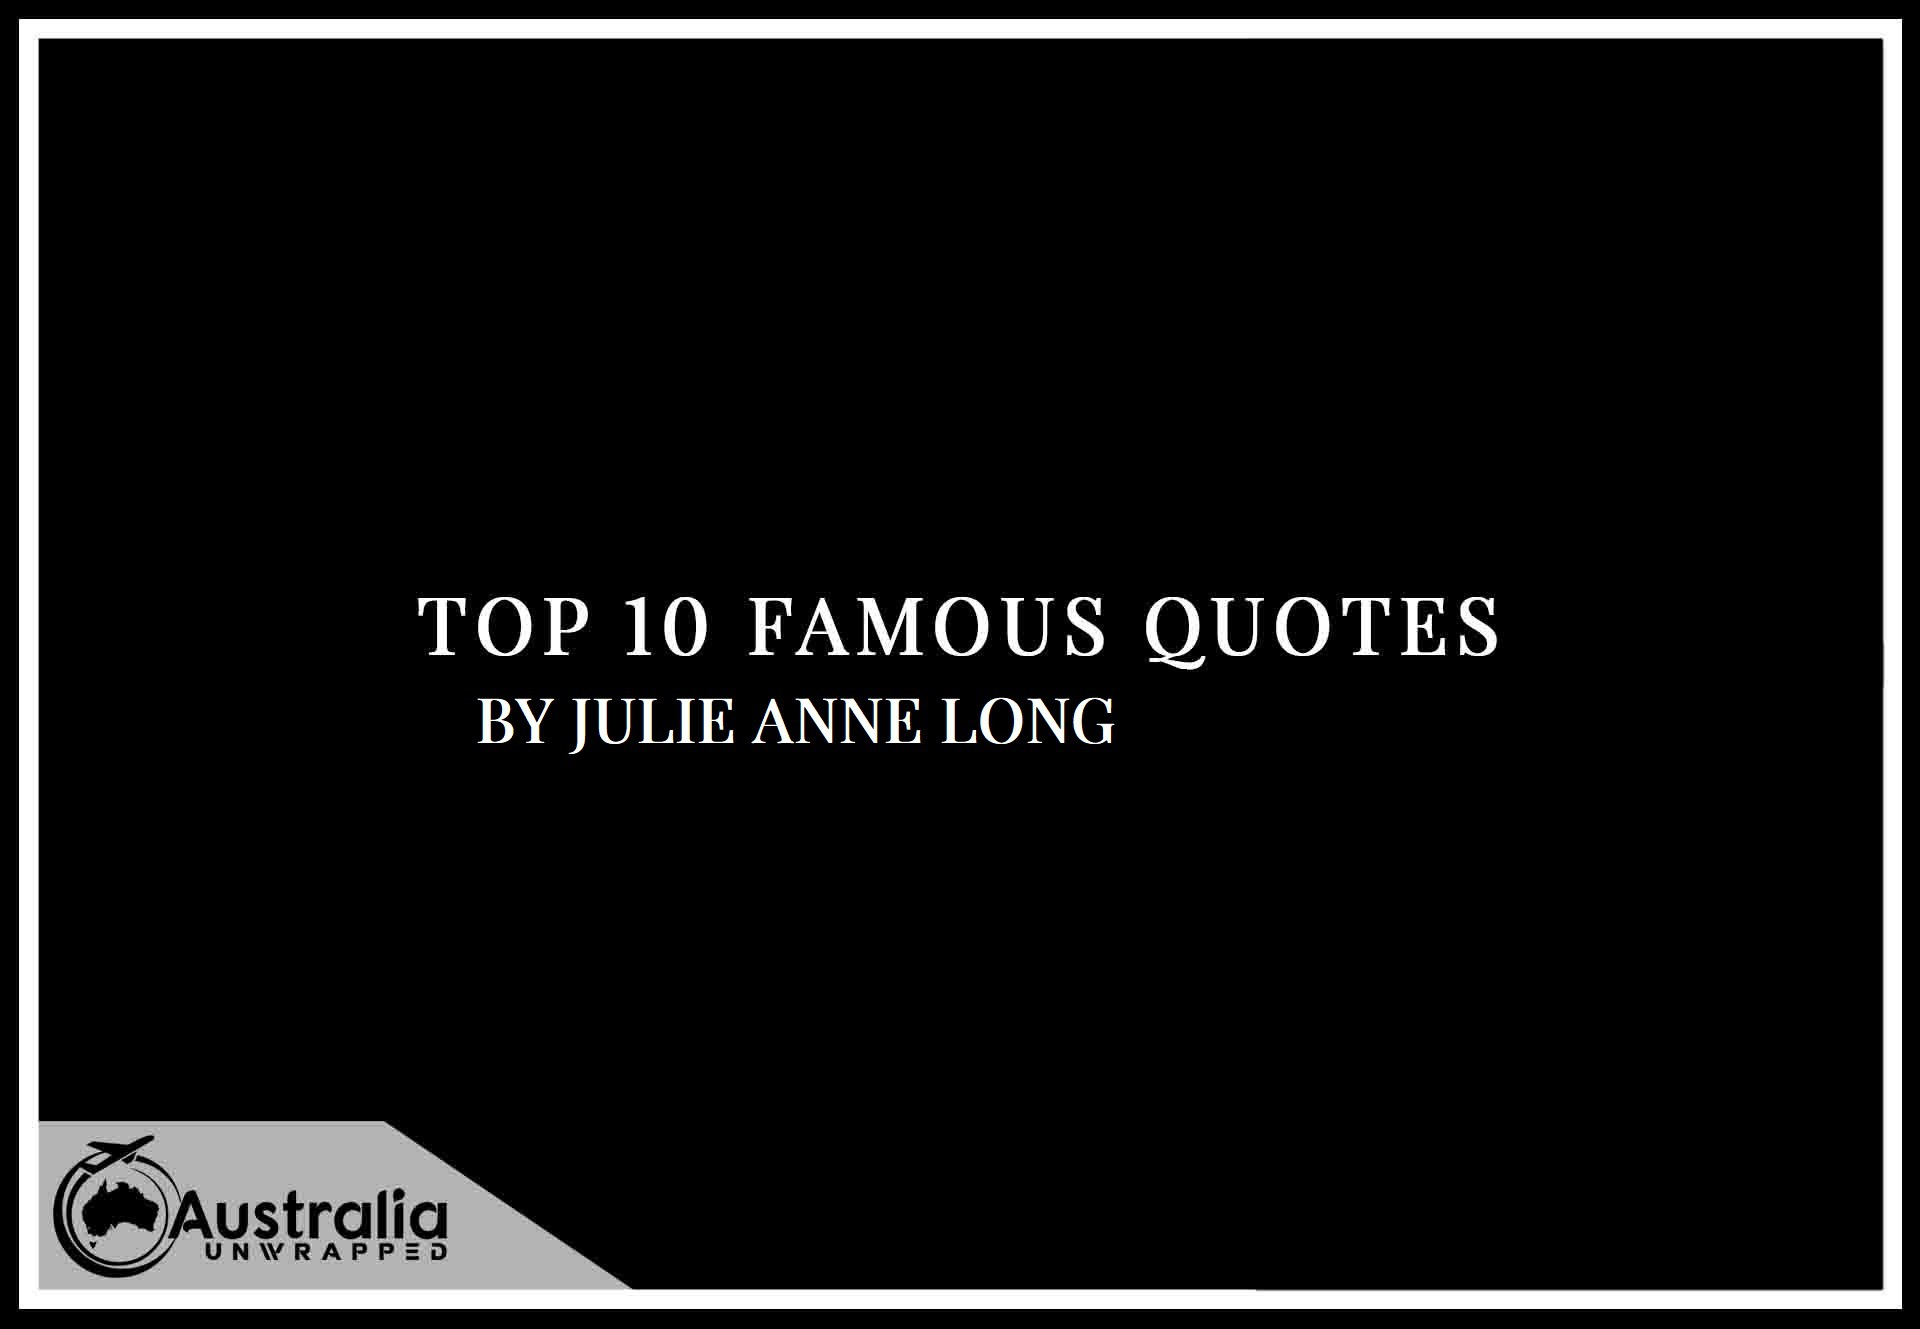 Top 10 Famous Quotes by Author Julie Anne Long